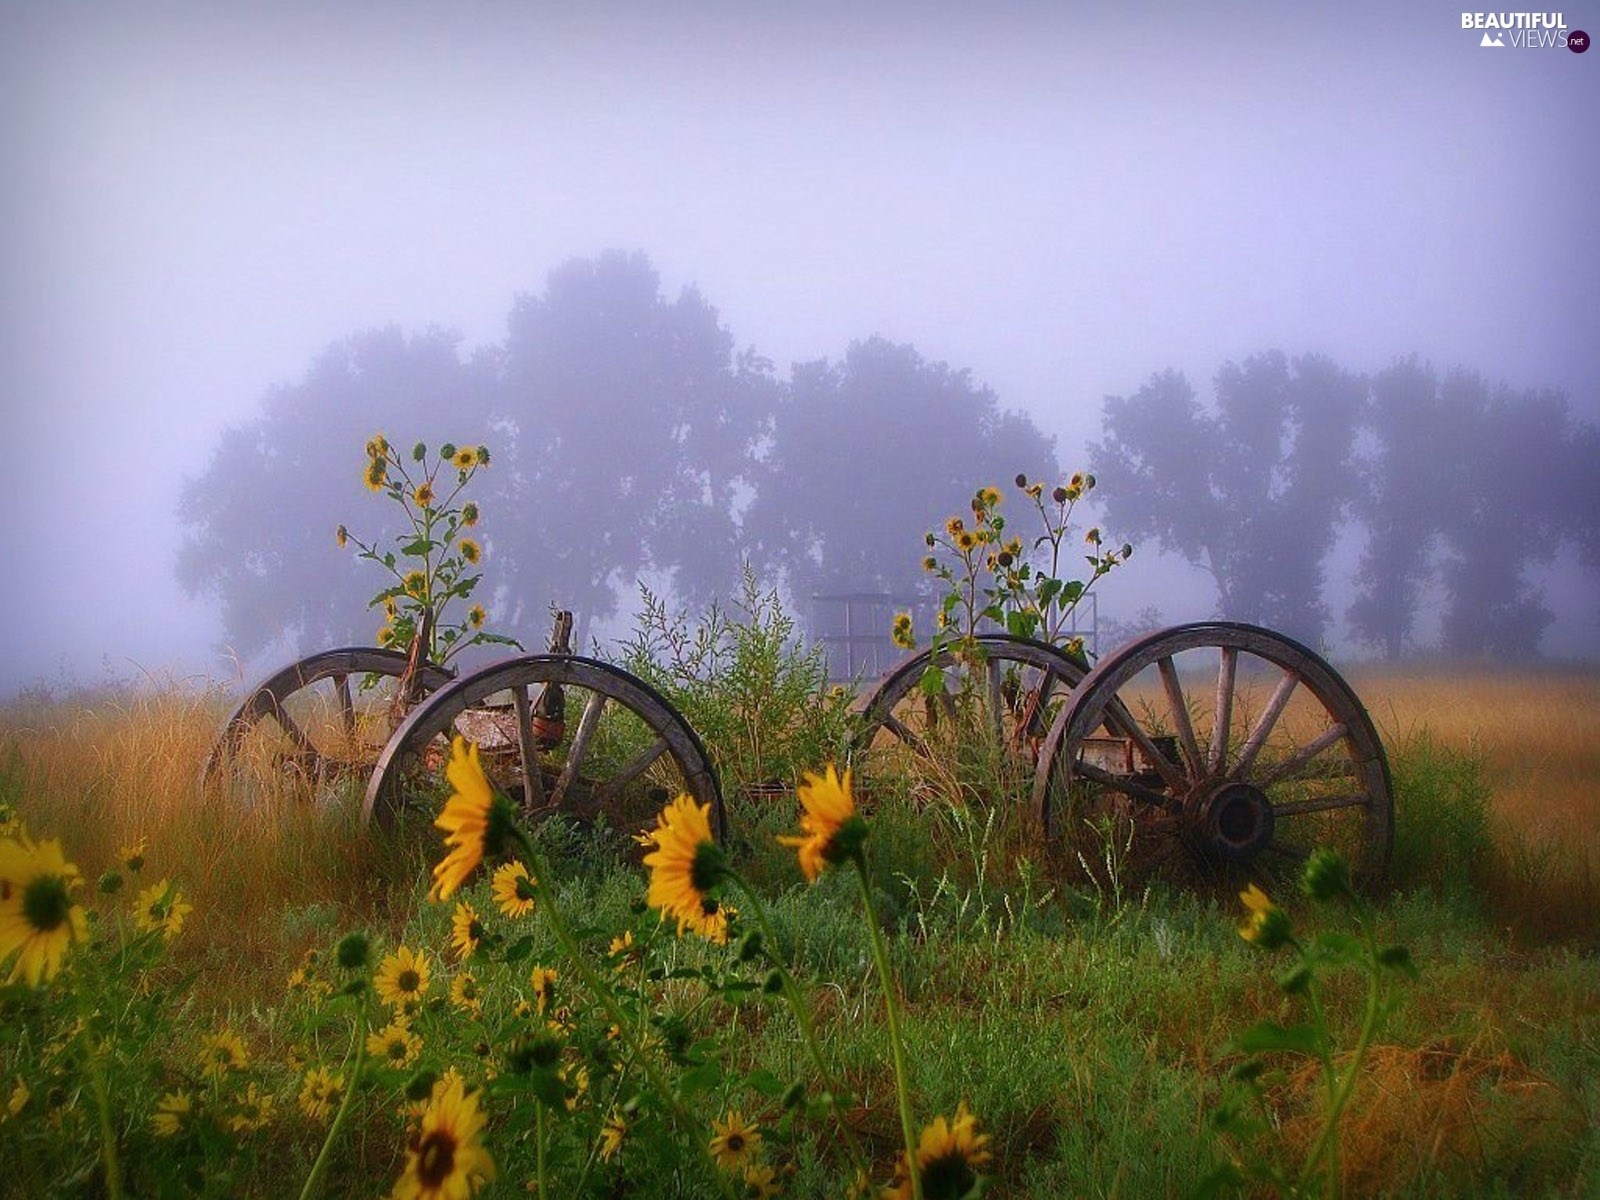 wheel, Nice sunflowers, Fog, wagon